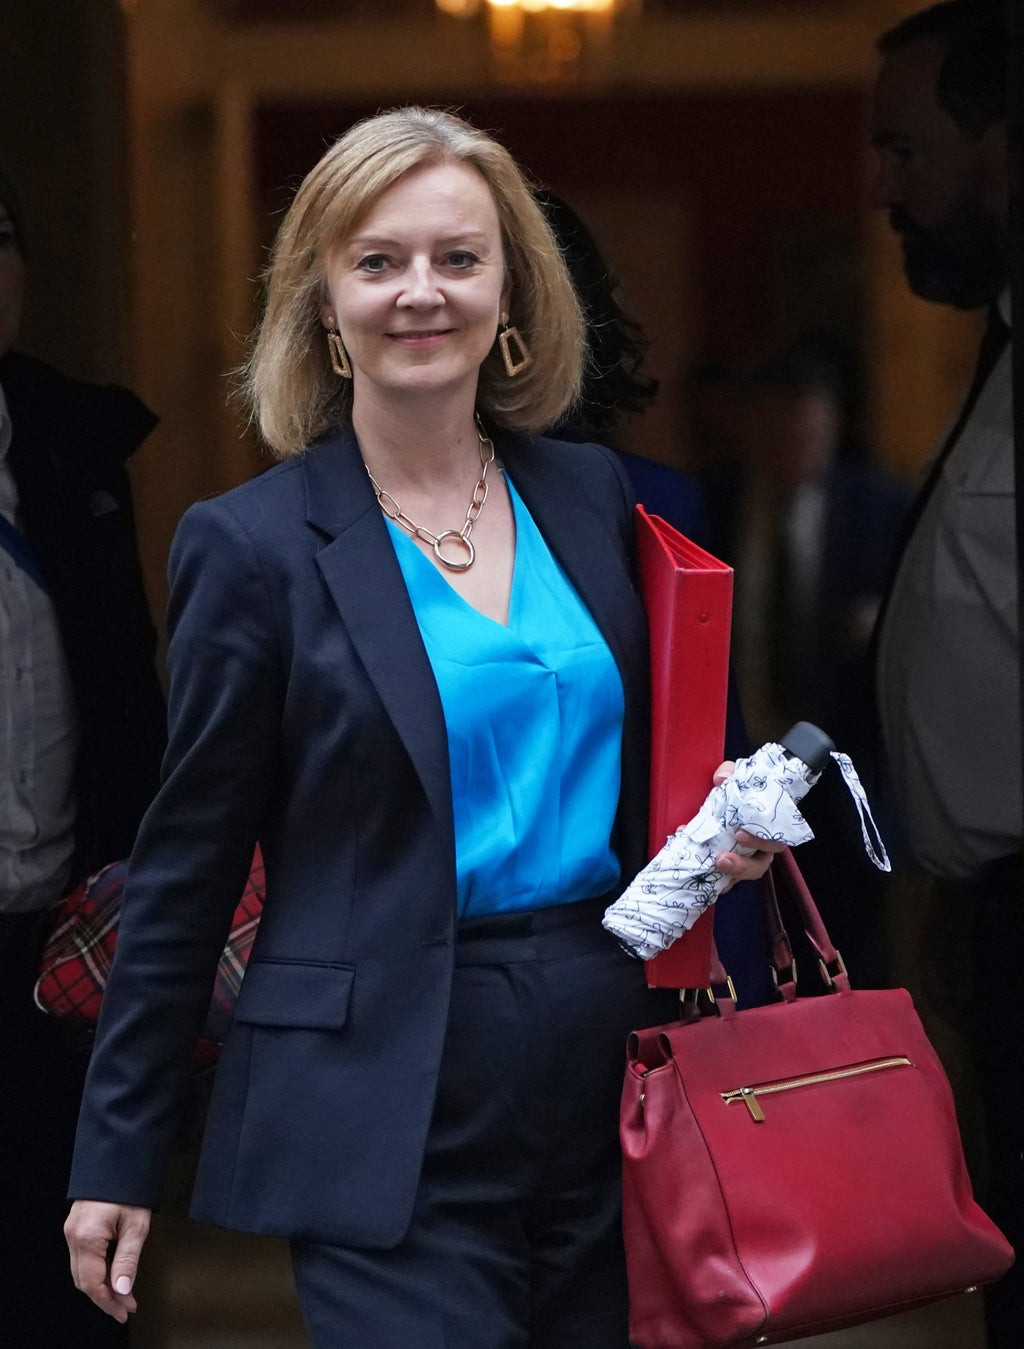 truss-becomes-foreign-secretary-as-johnson-wields-axe-in-cabinet-reshuffle